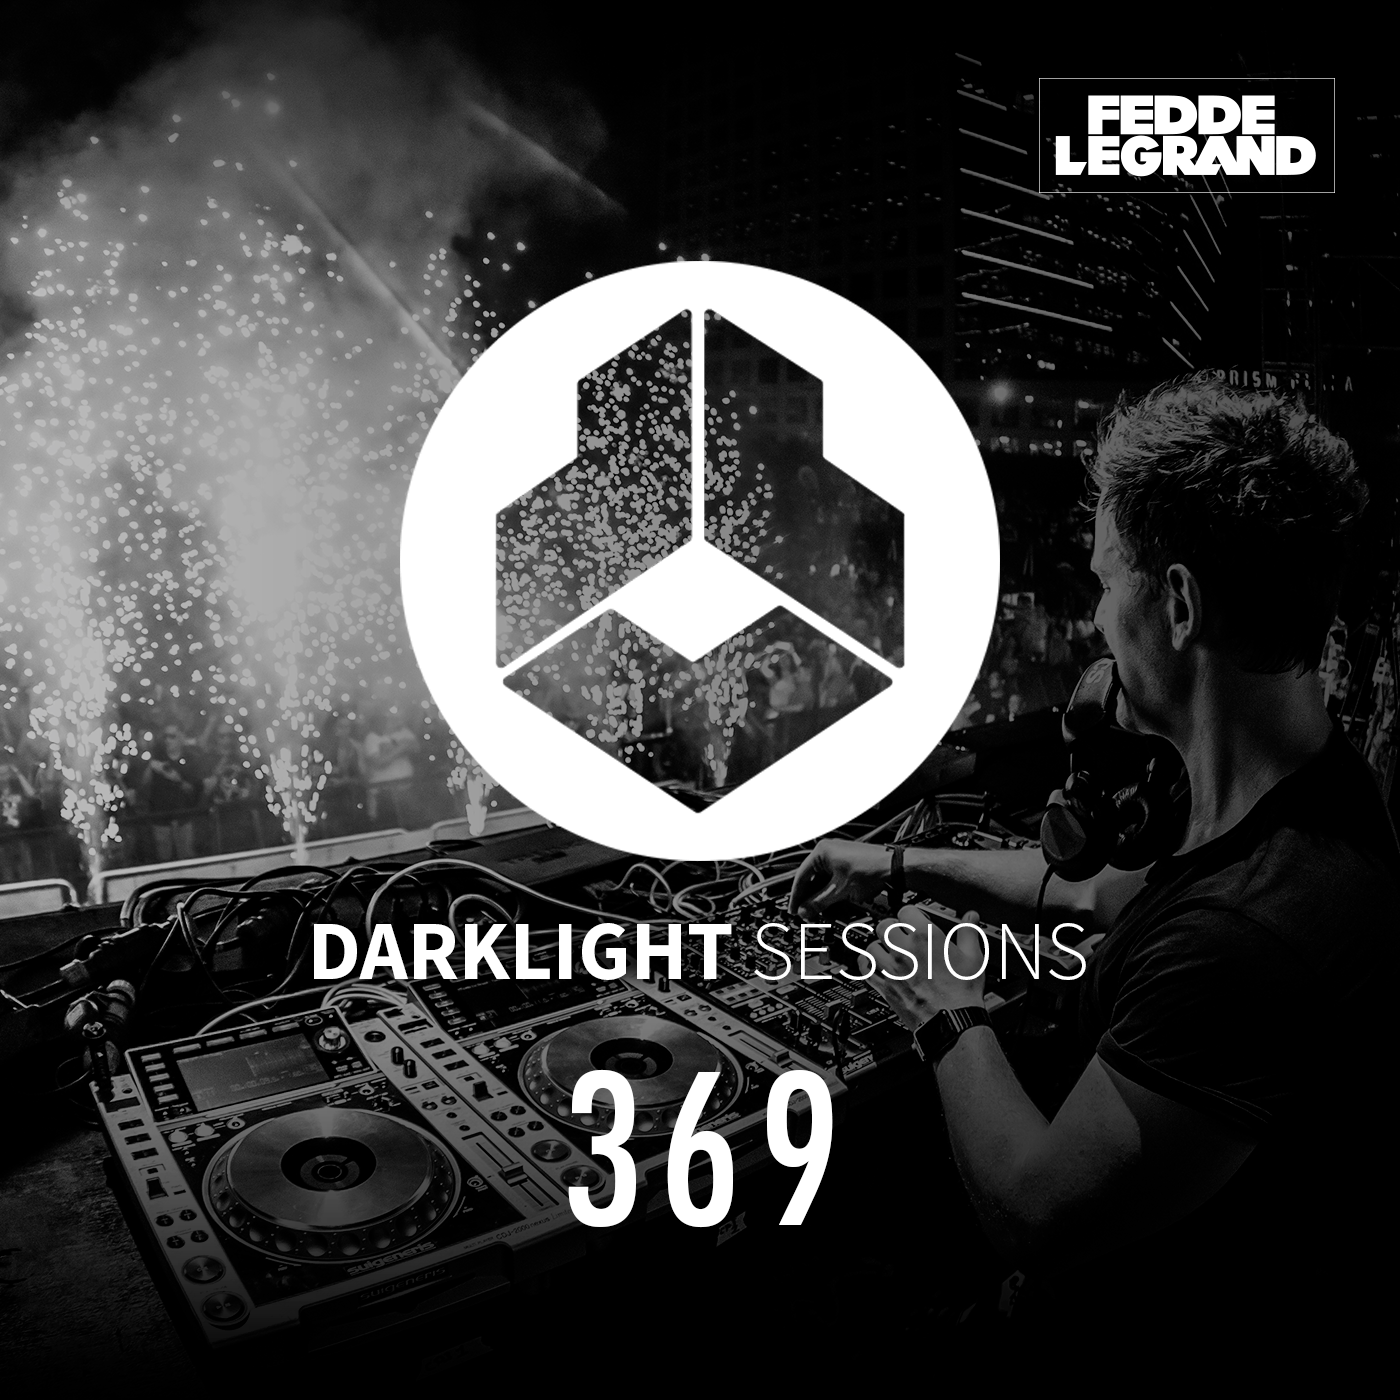 Darklight Sessions 369